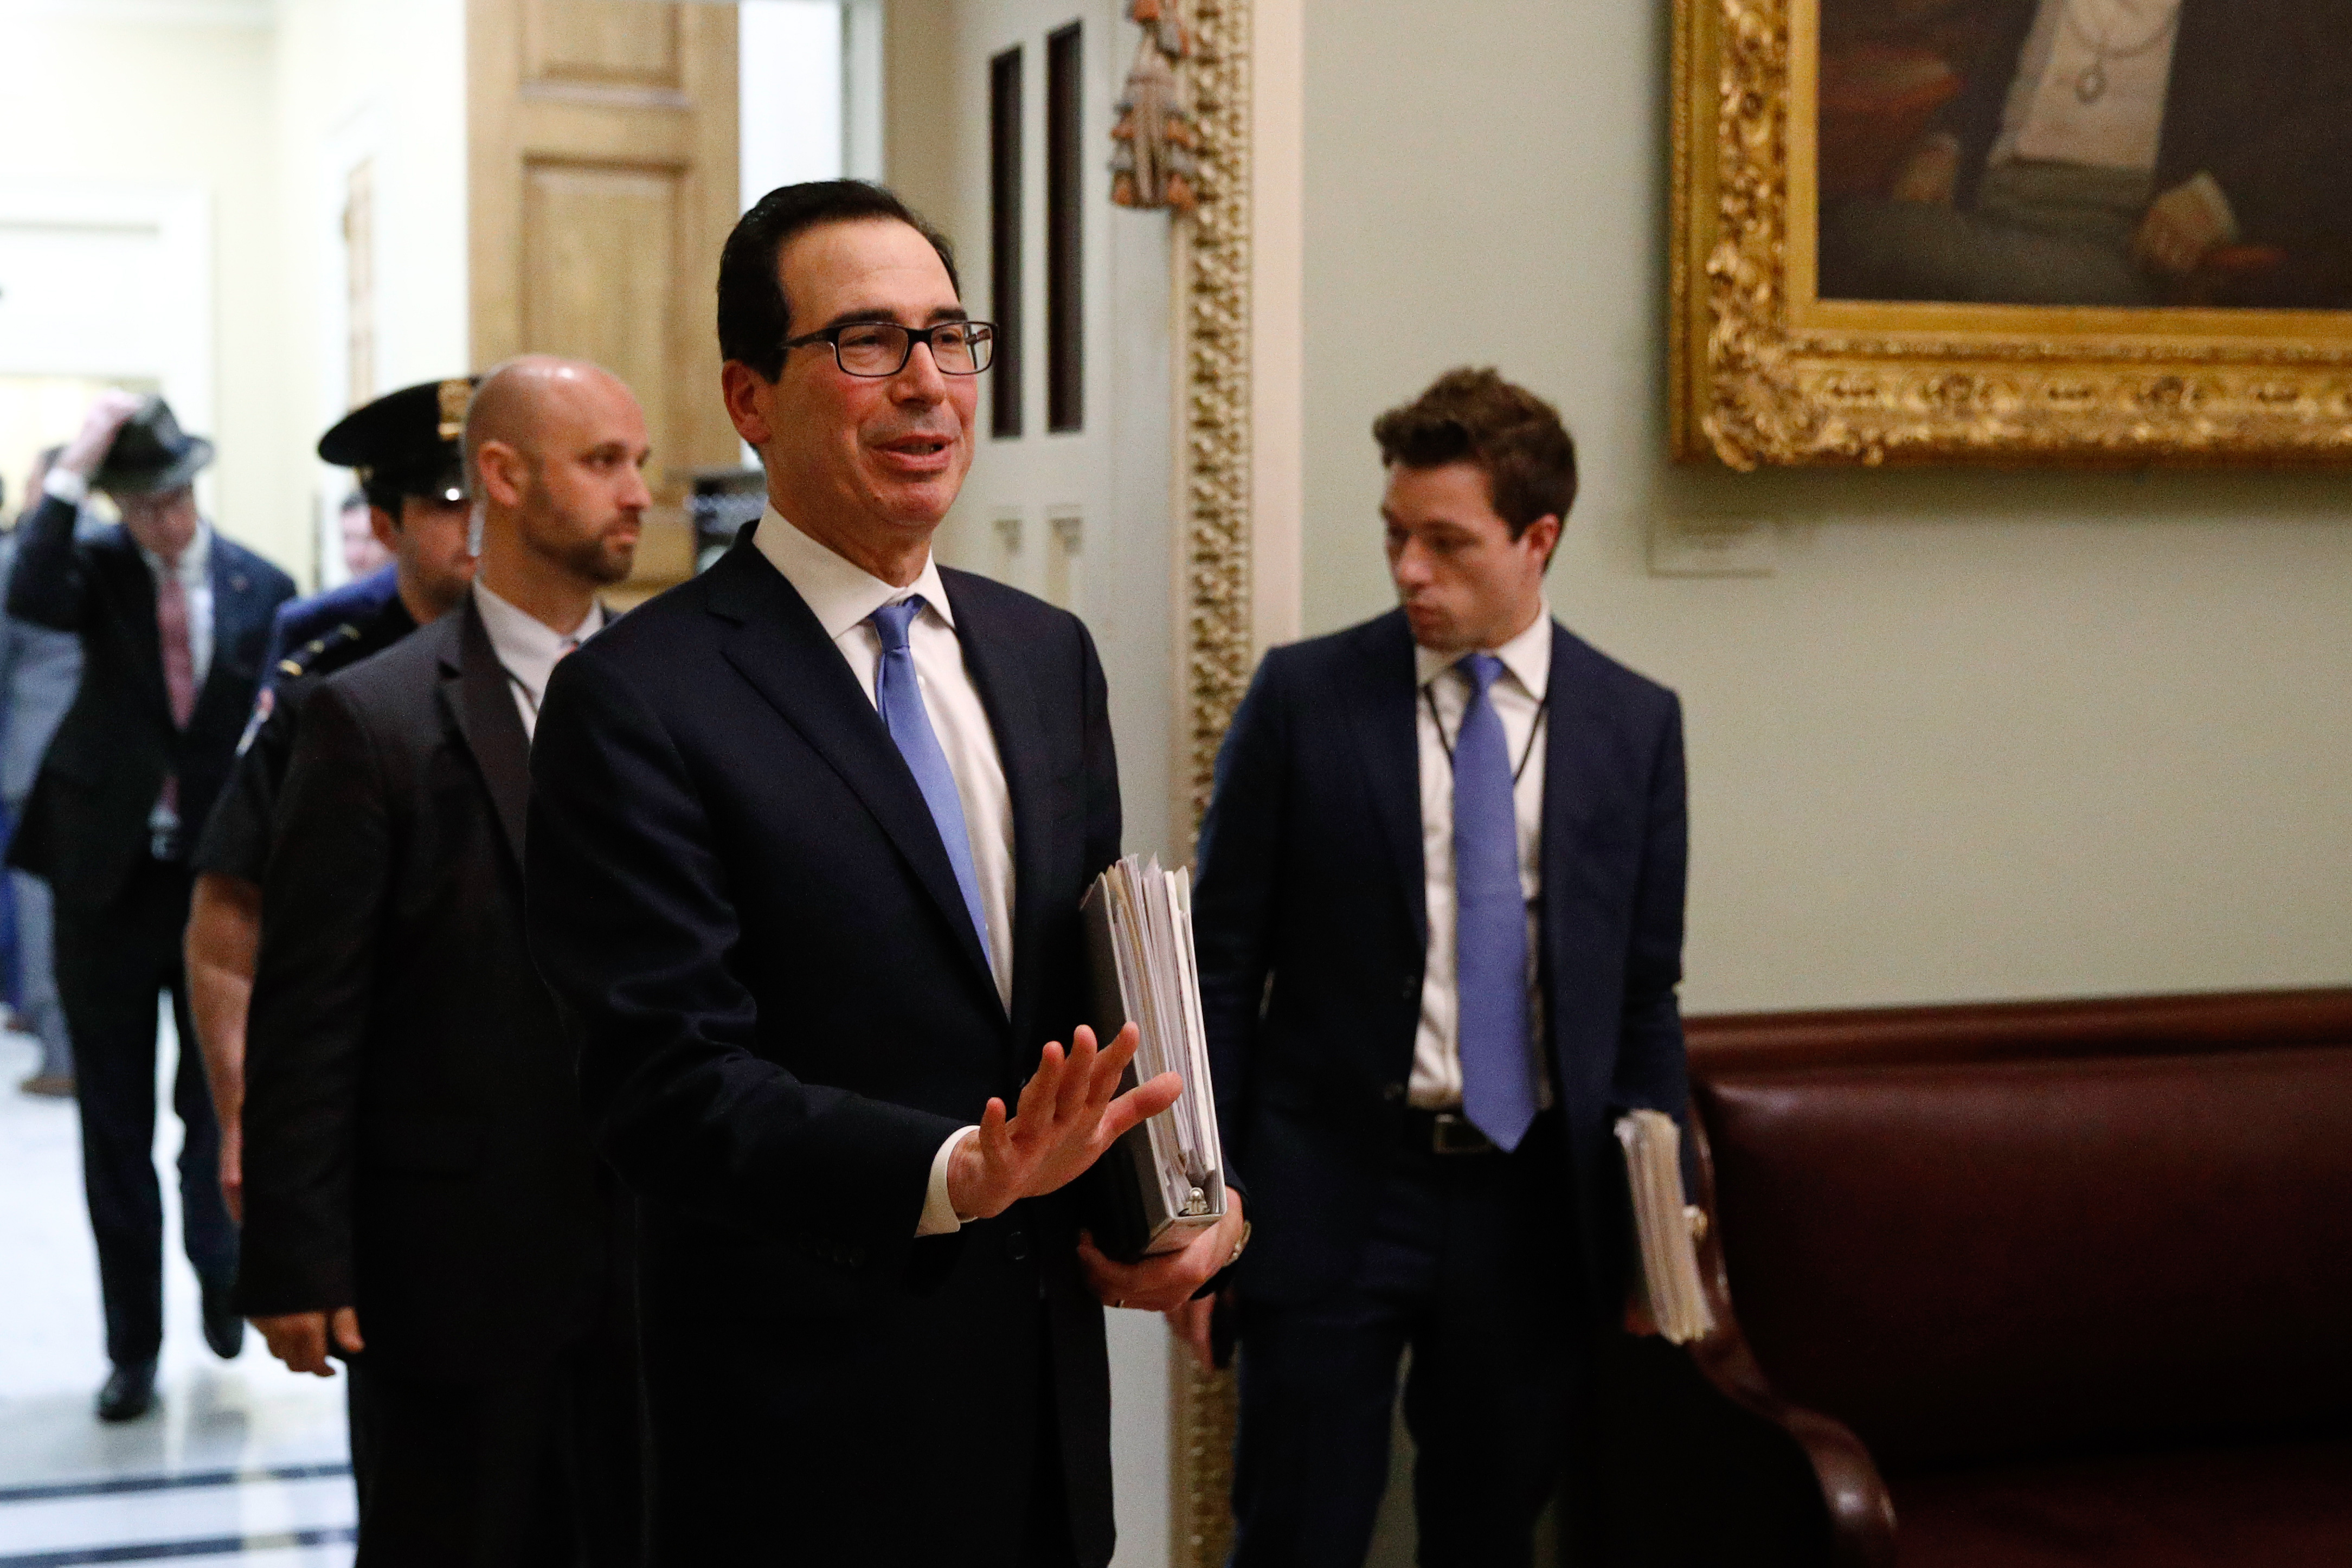 Treasury Secretary Steve Mnuchin